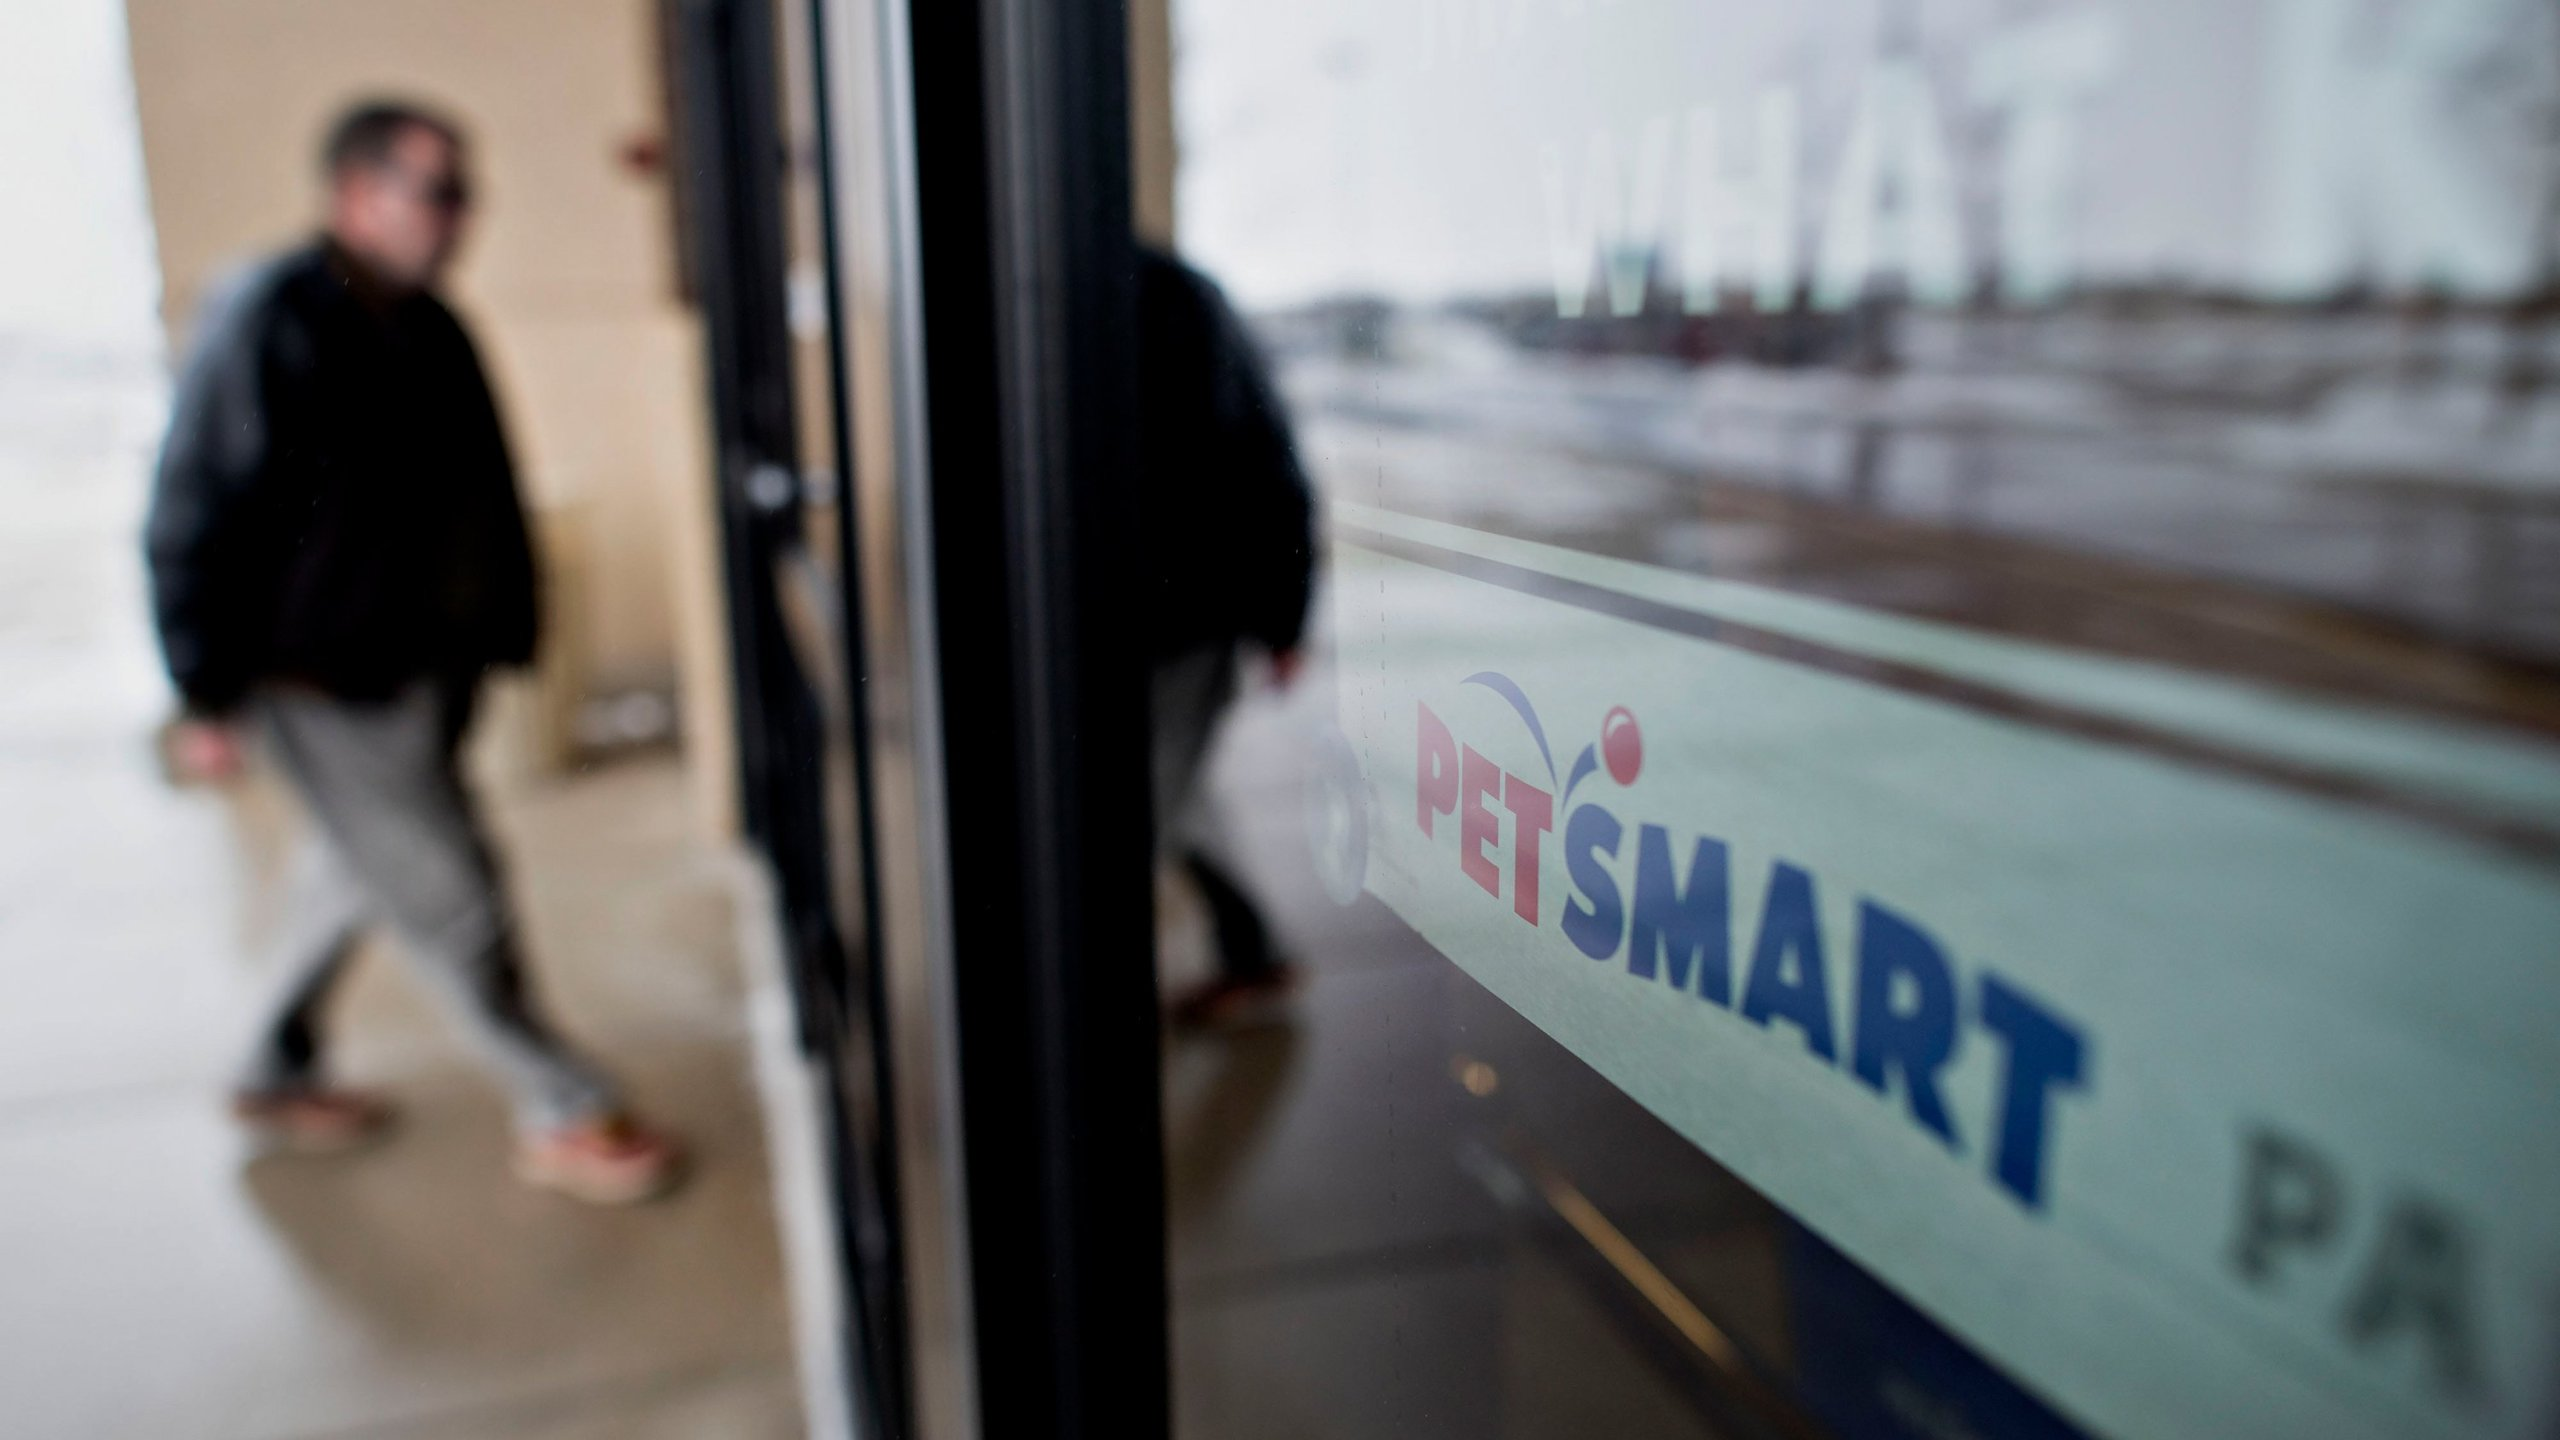 Petsmart Christmas Hours 2020 Owner says bulldog was crushed to death at PetSmart during